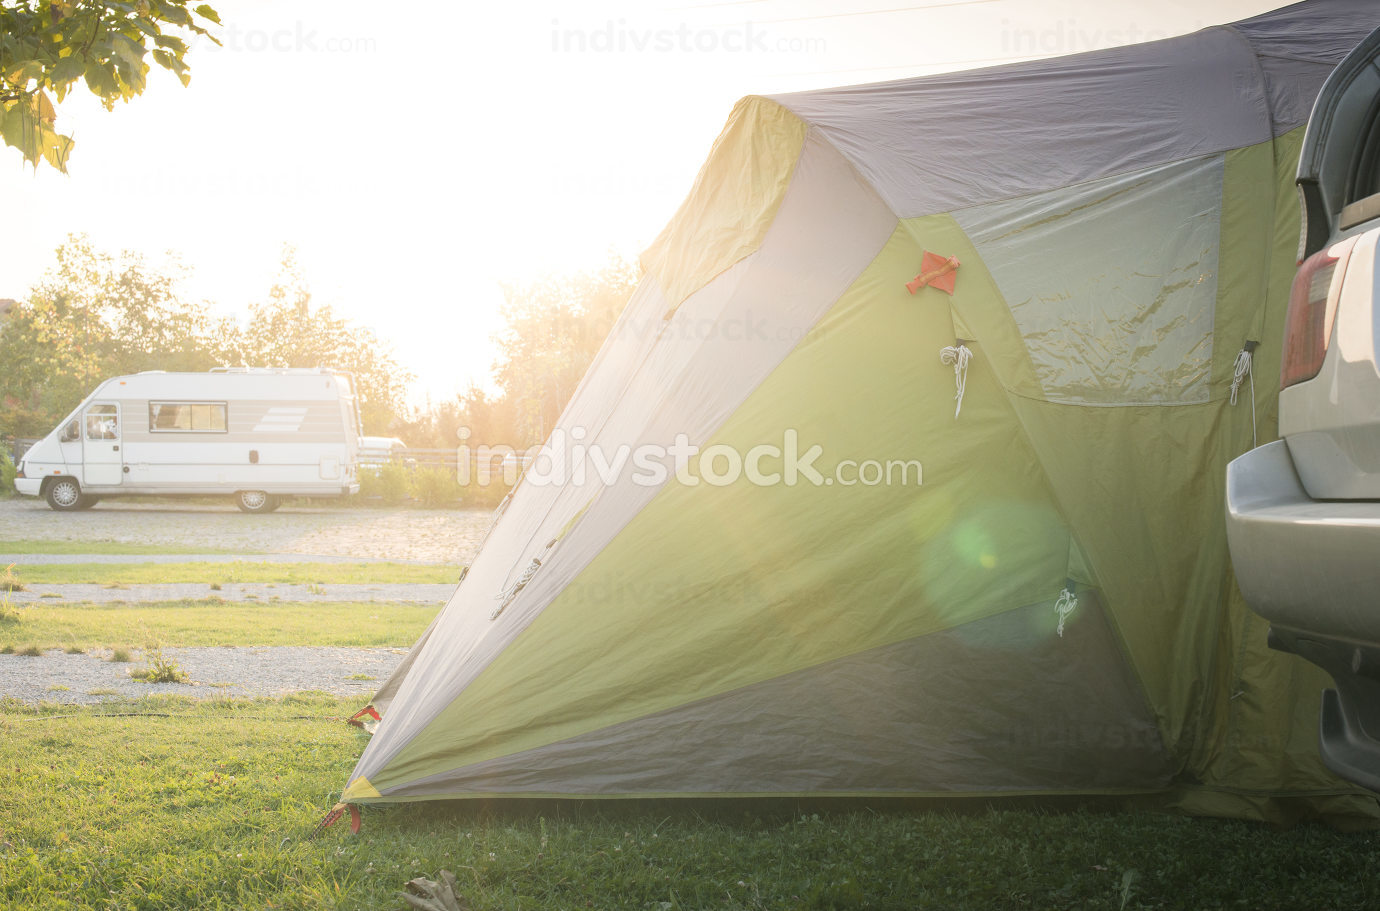 Tent and car on campsite